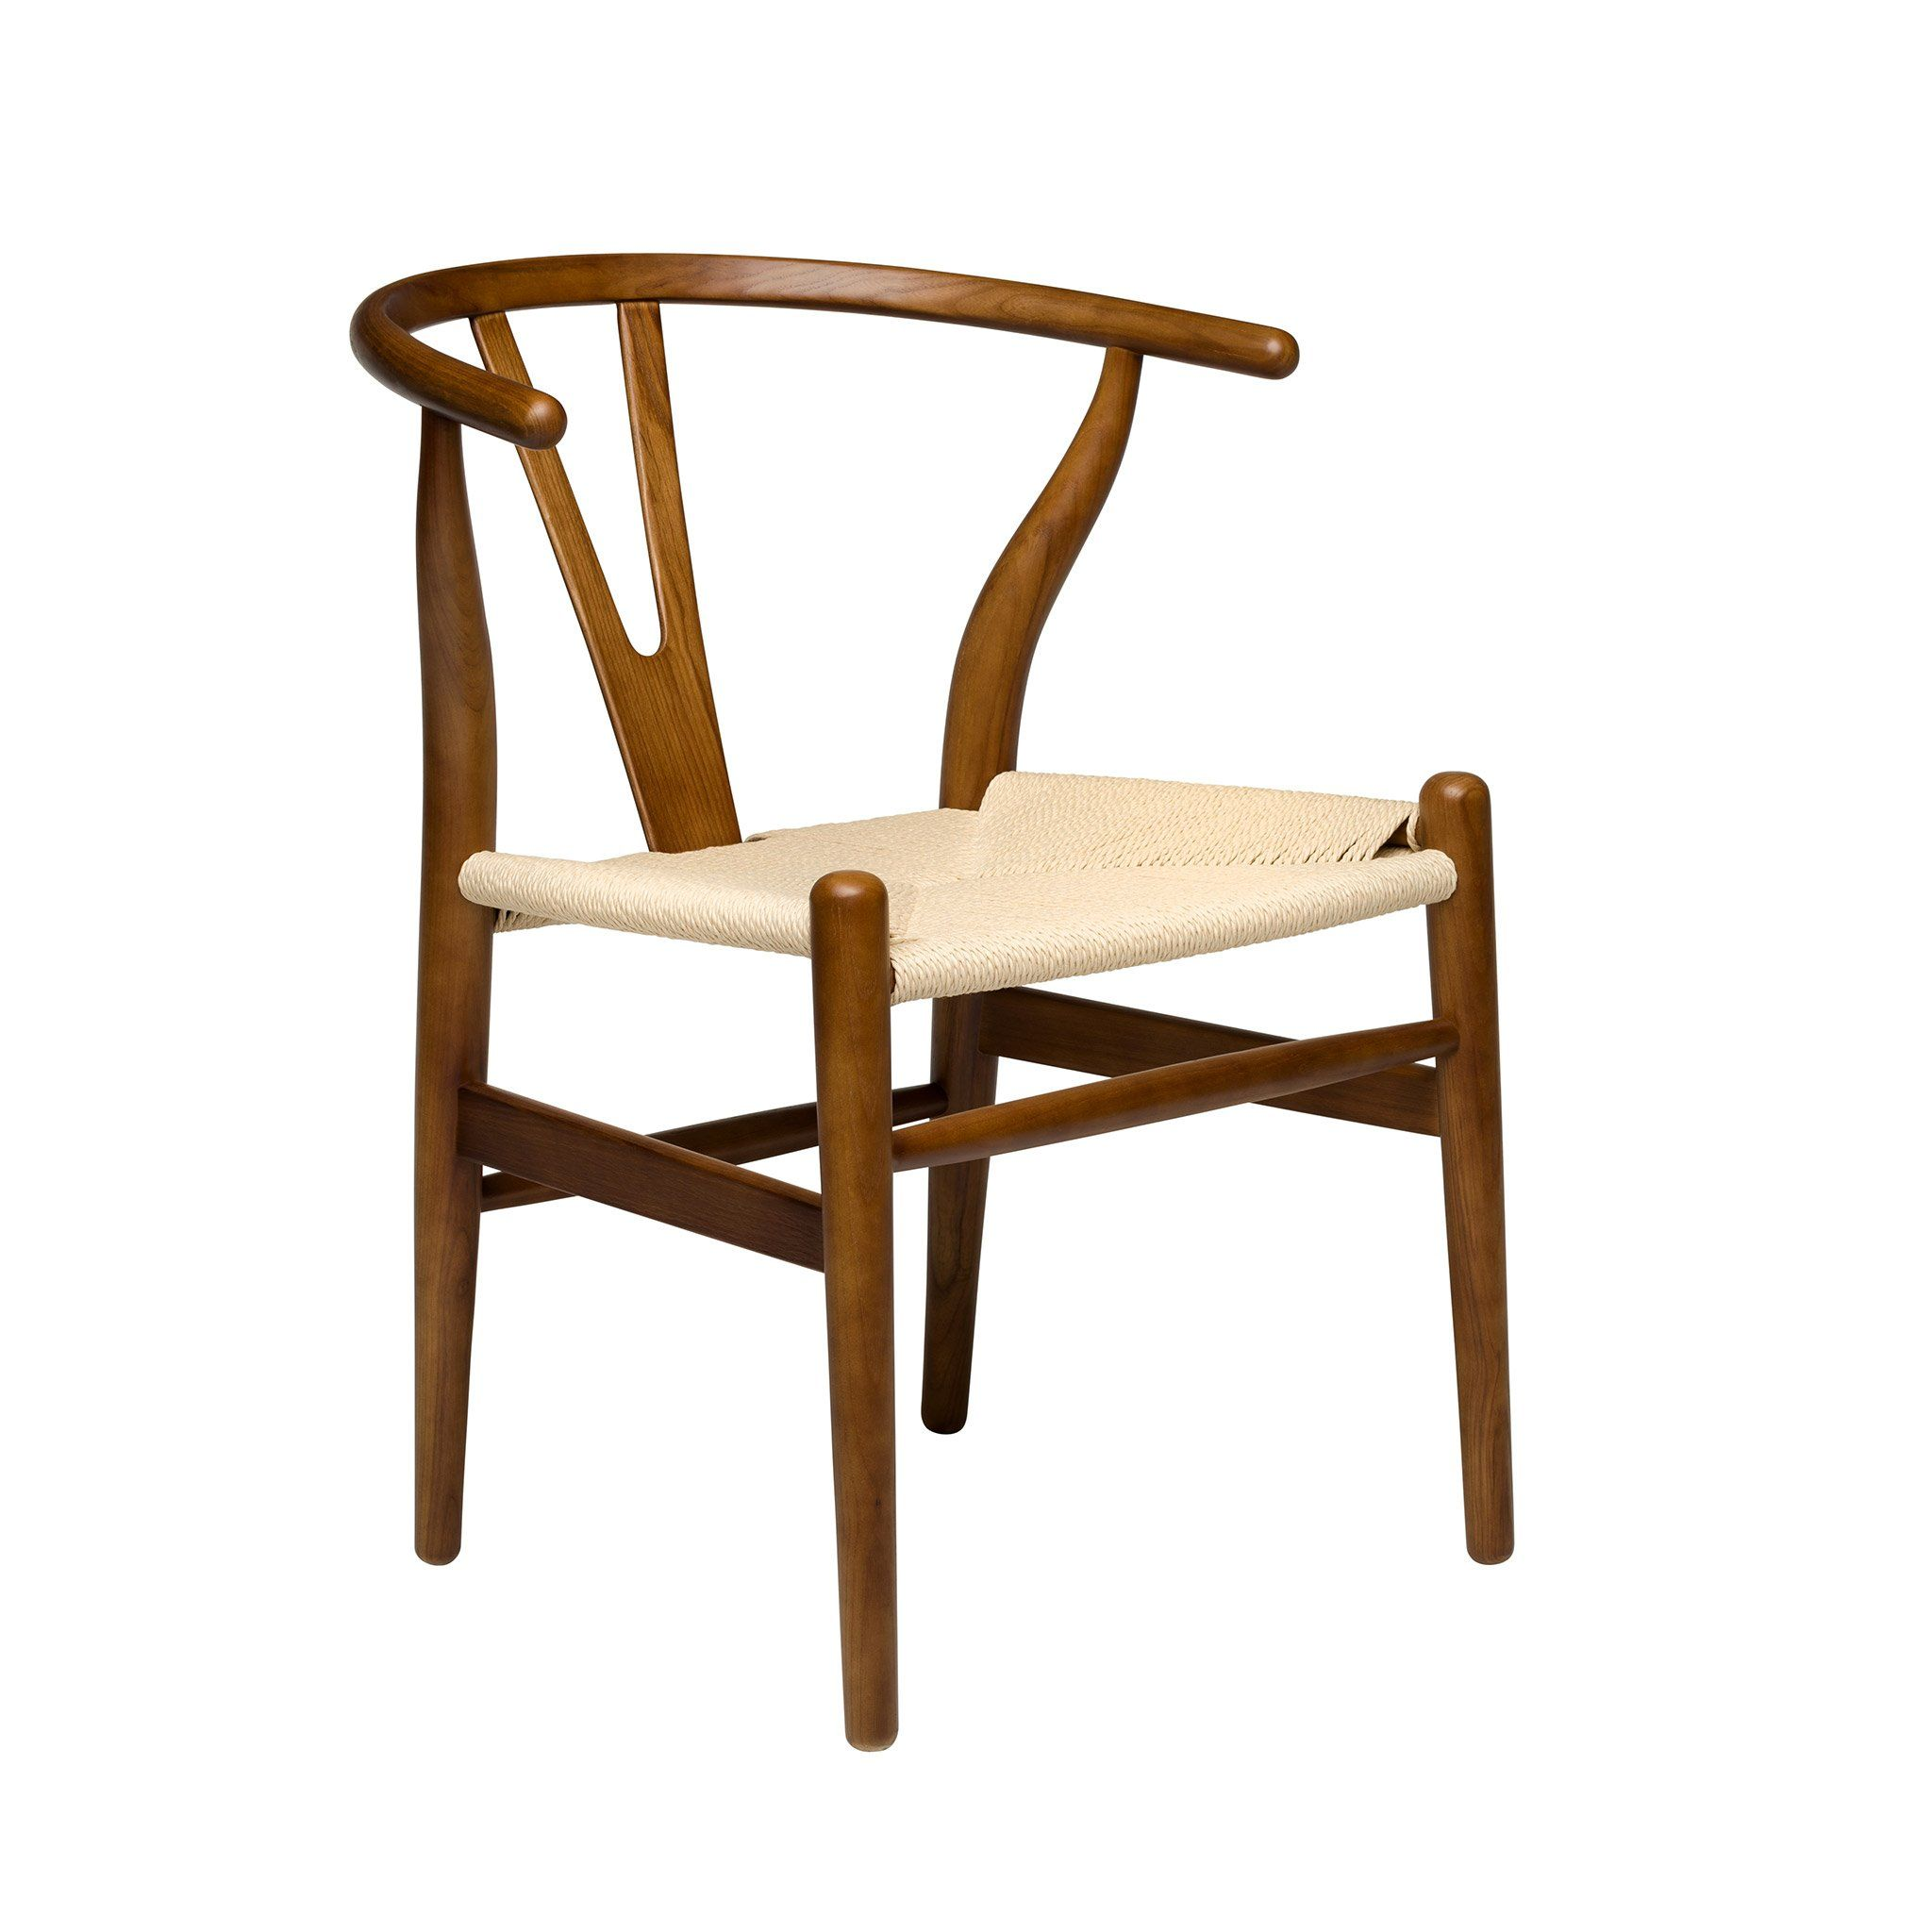 Wishbone chair walnut woven cord ships november 29th